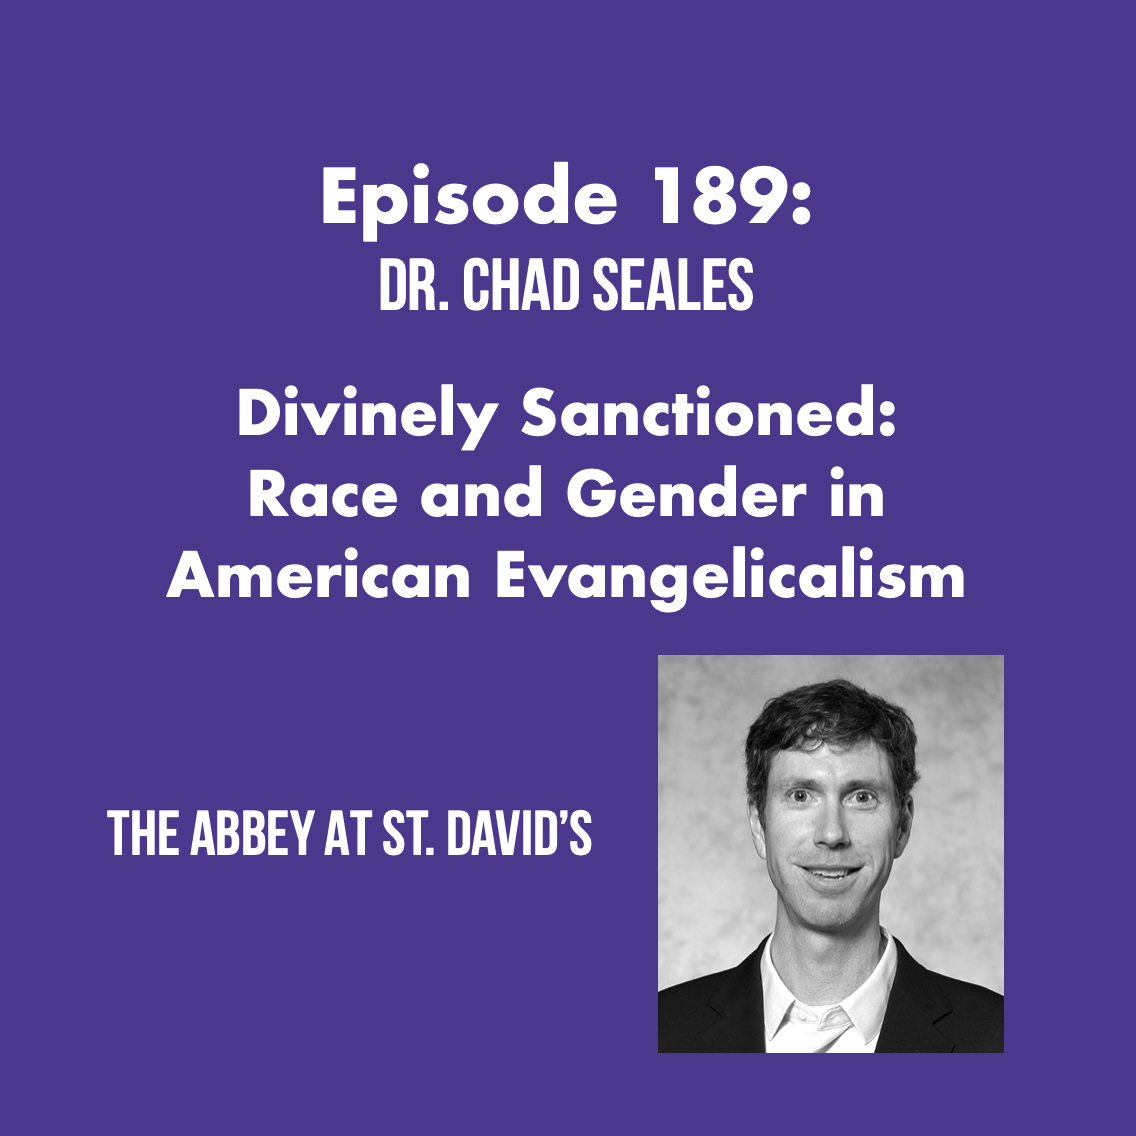 Episode 189: Divinely Sanctioned: Race and Gender in American Evangelicalism with Dr. Chad Seales